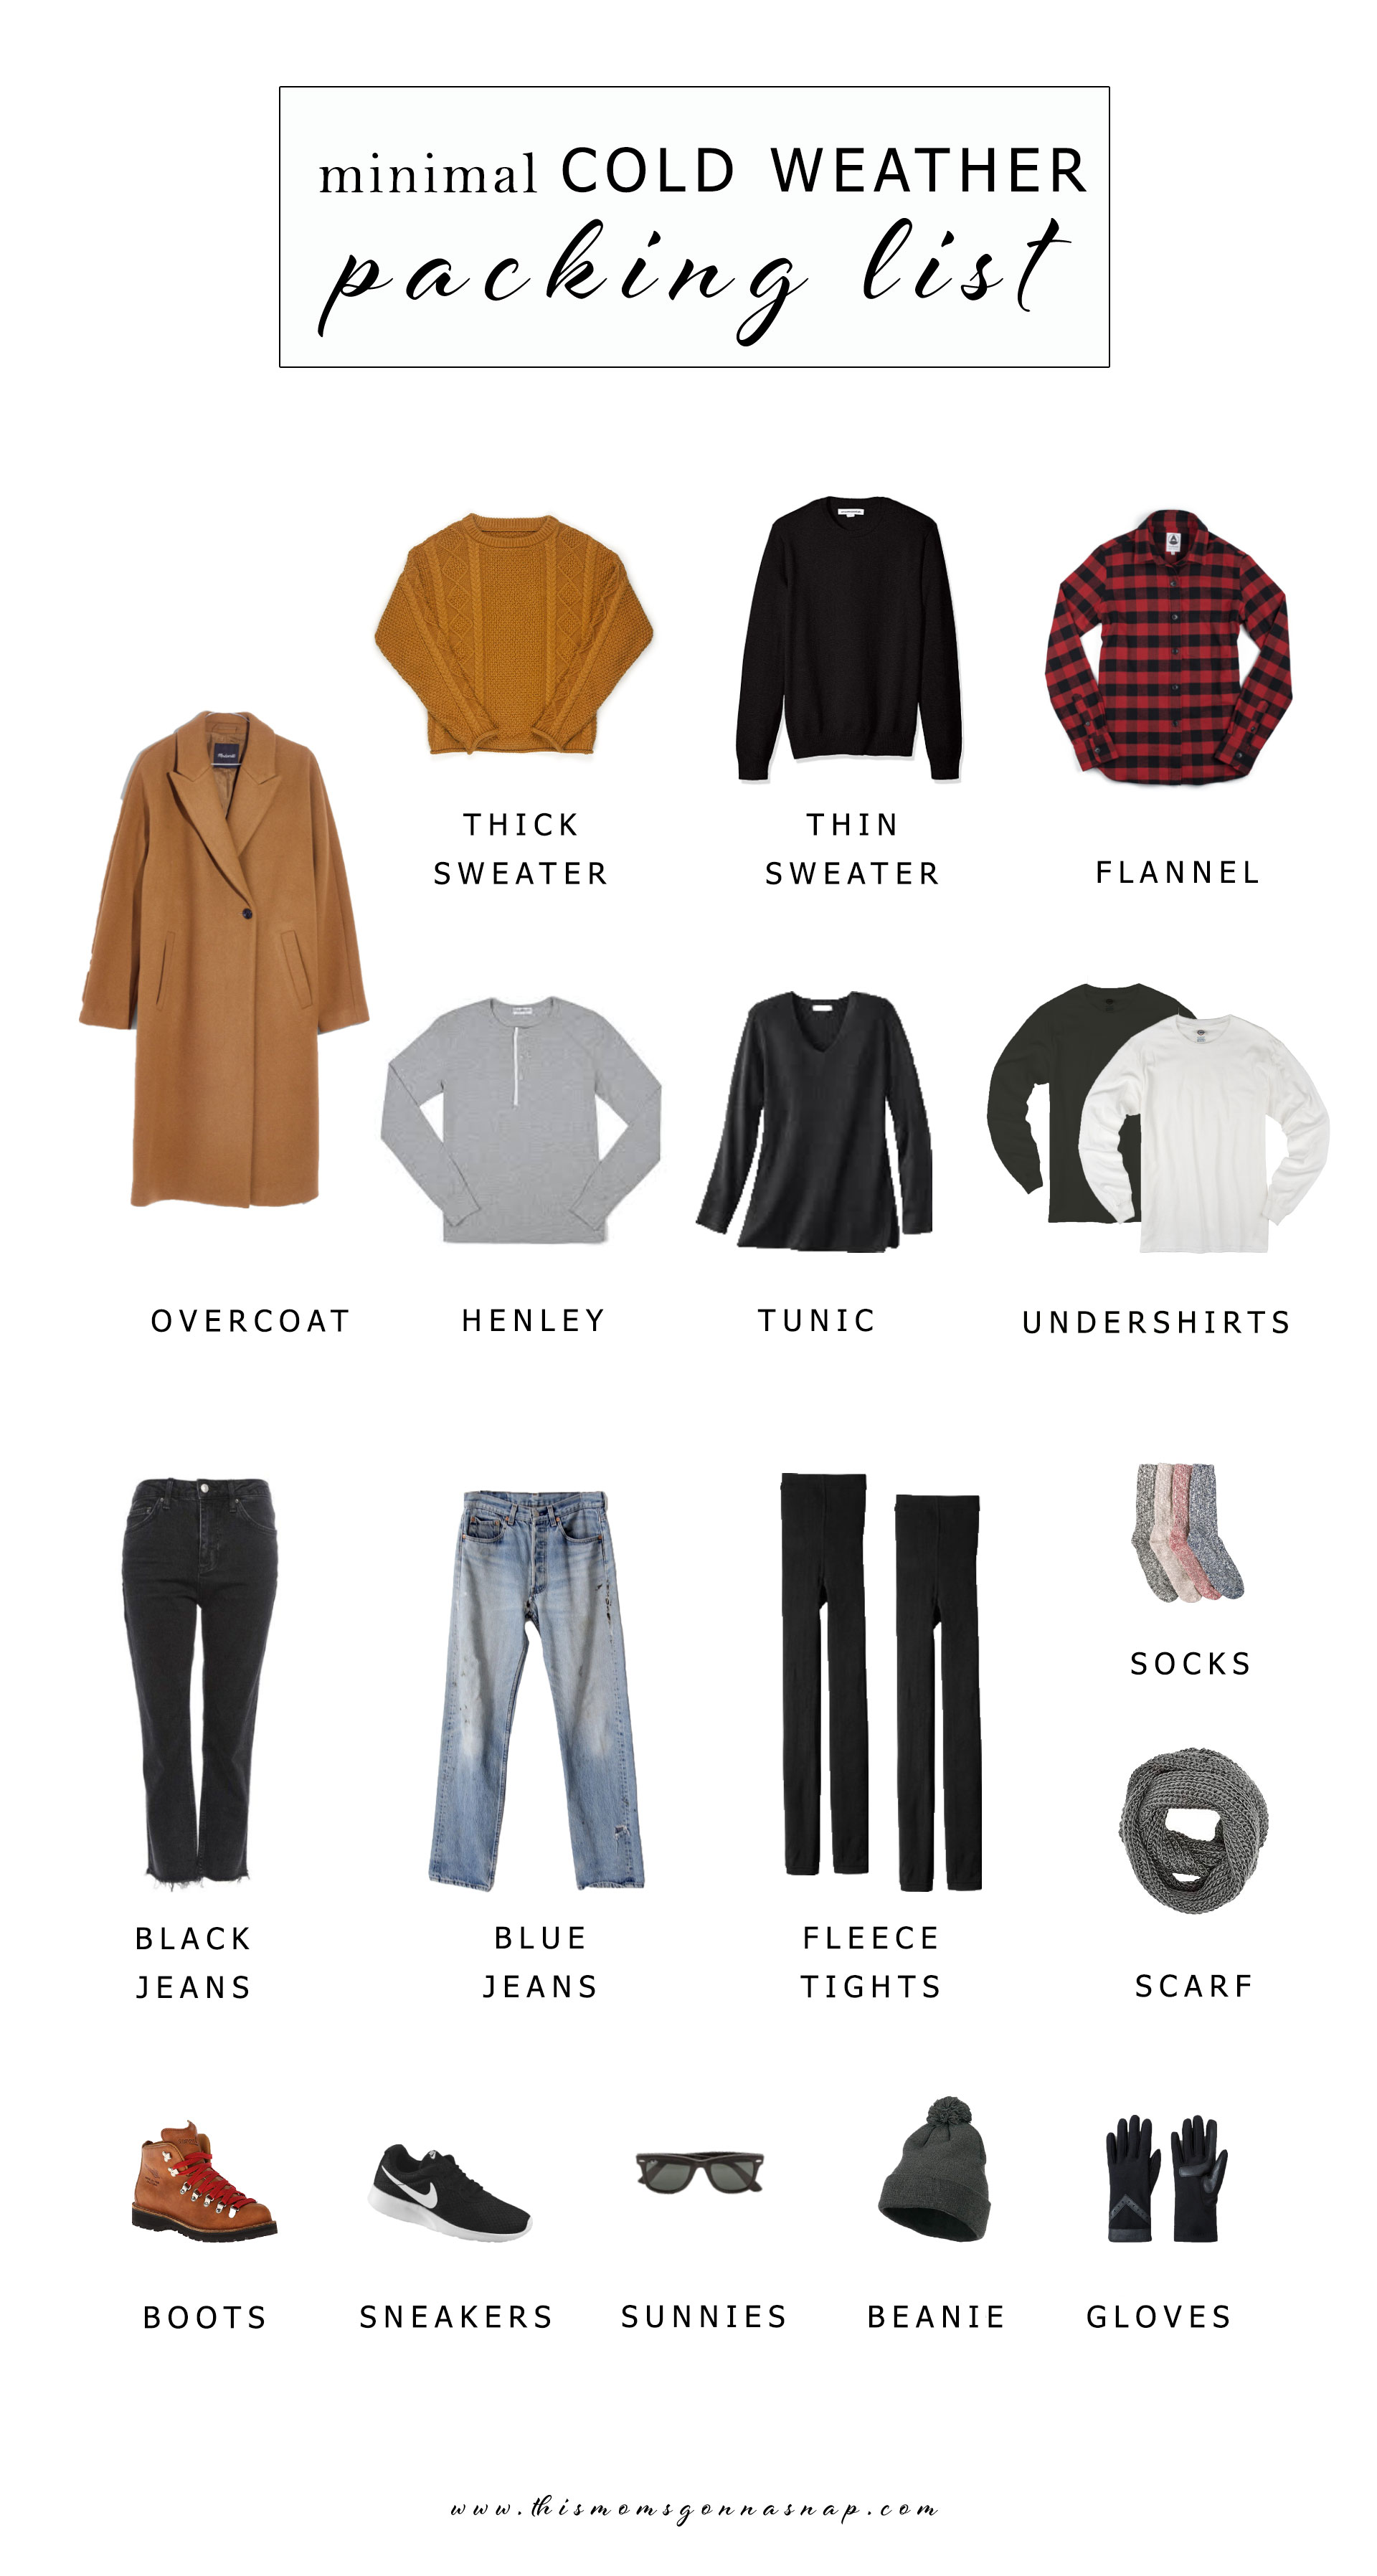 minimal cold weather packing list, packing list for the midwest, packing for winter in a carry-on, winter essentials